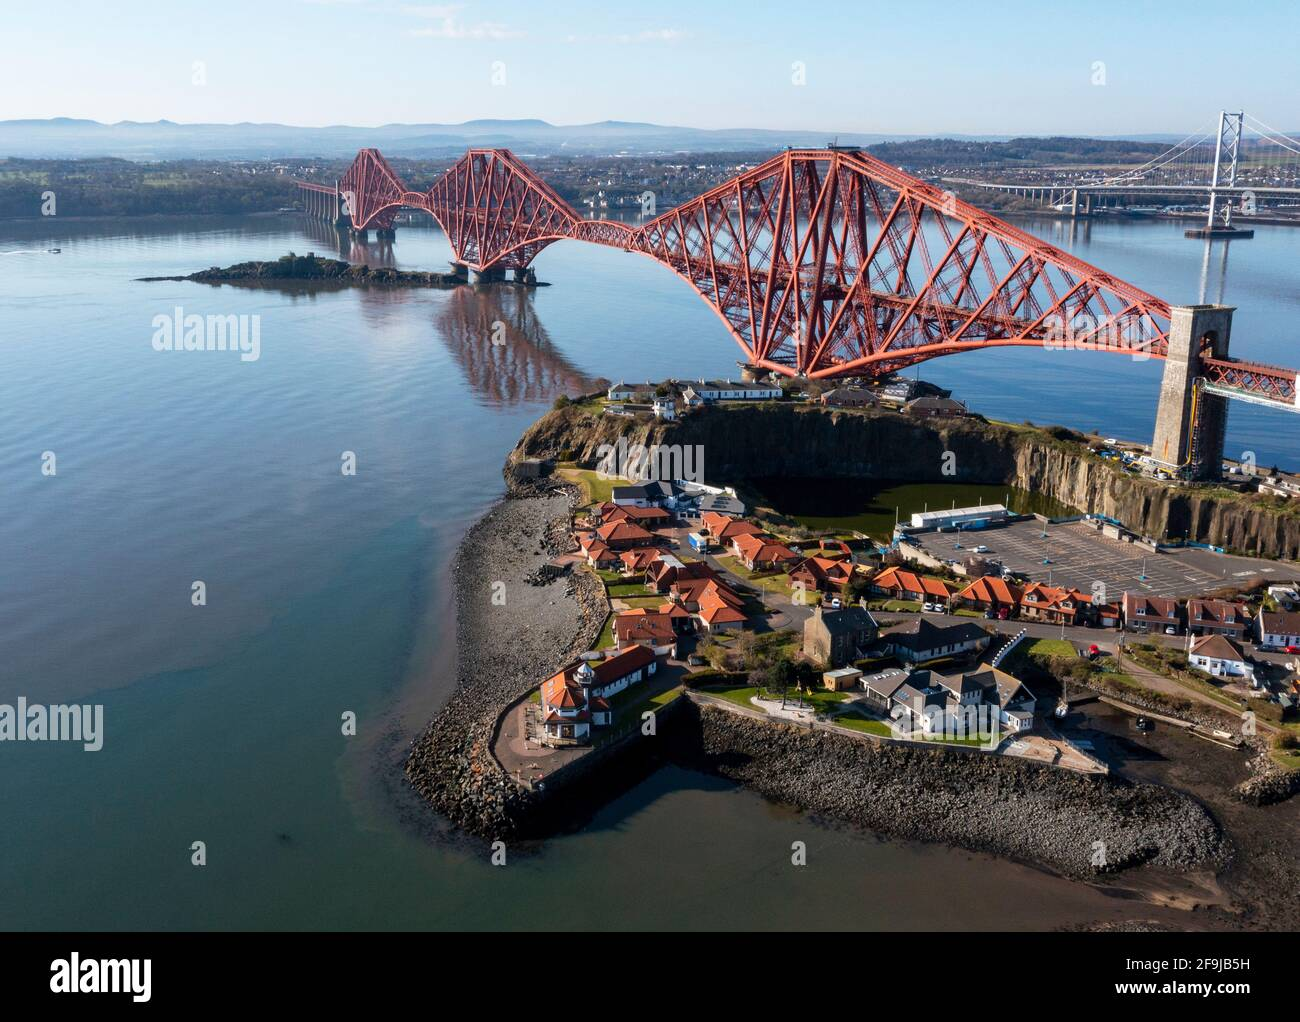 Aerial view of the Forth Rail Bridge at North Queensferry. The bridge completed in 1889 spans the Firth of Forth between North and South Queensferry. Stock Photo